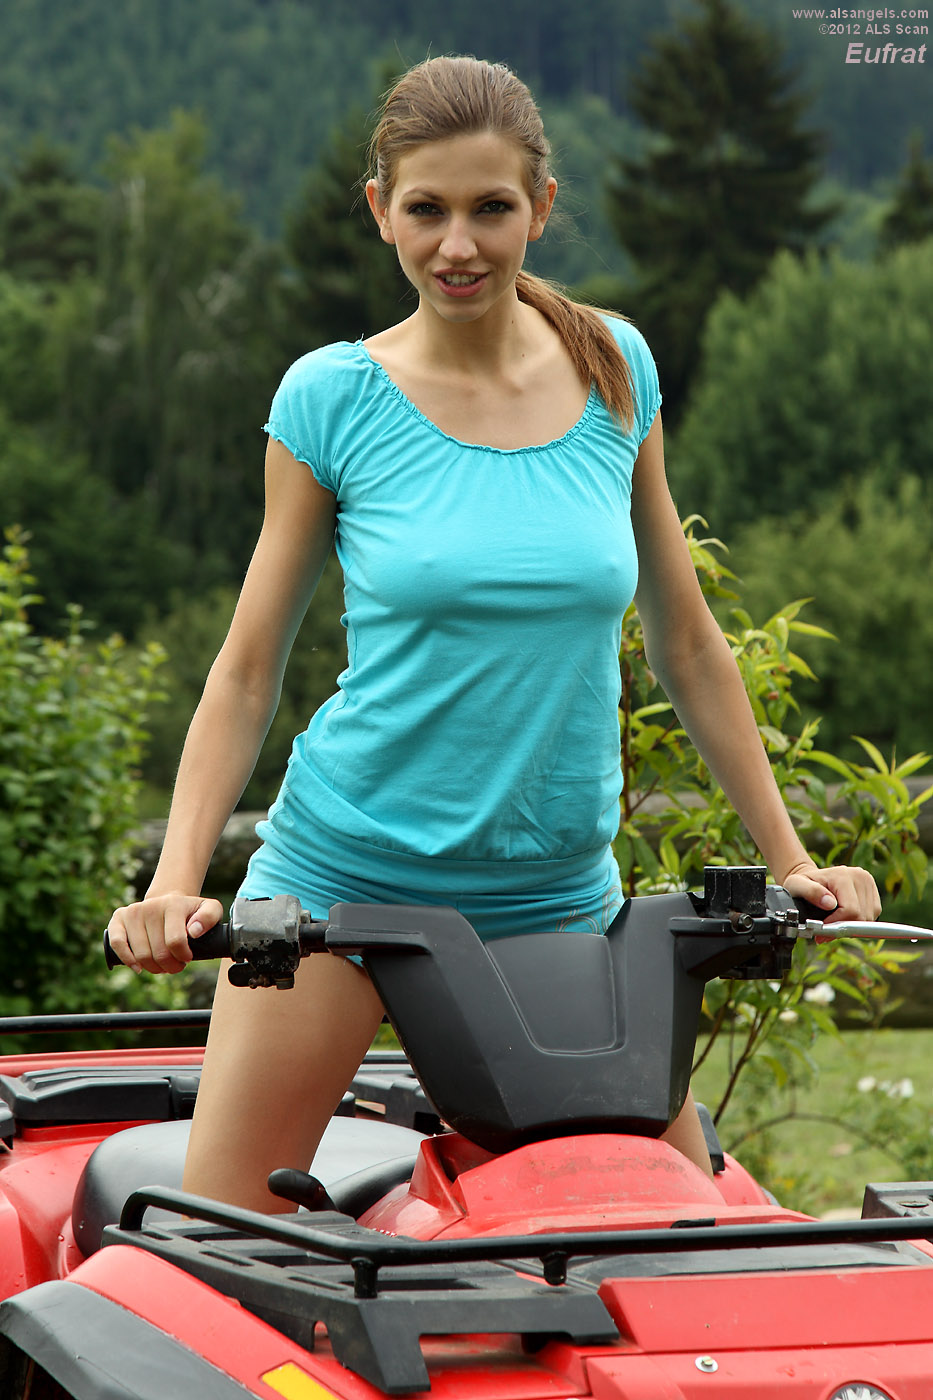 Eufrat - Eufrat Strips and Poses on Top of an ATV